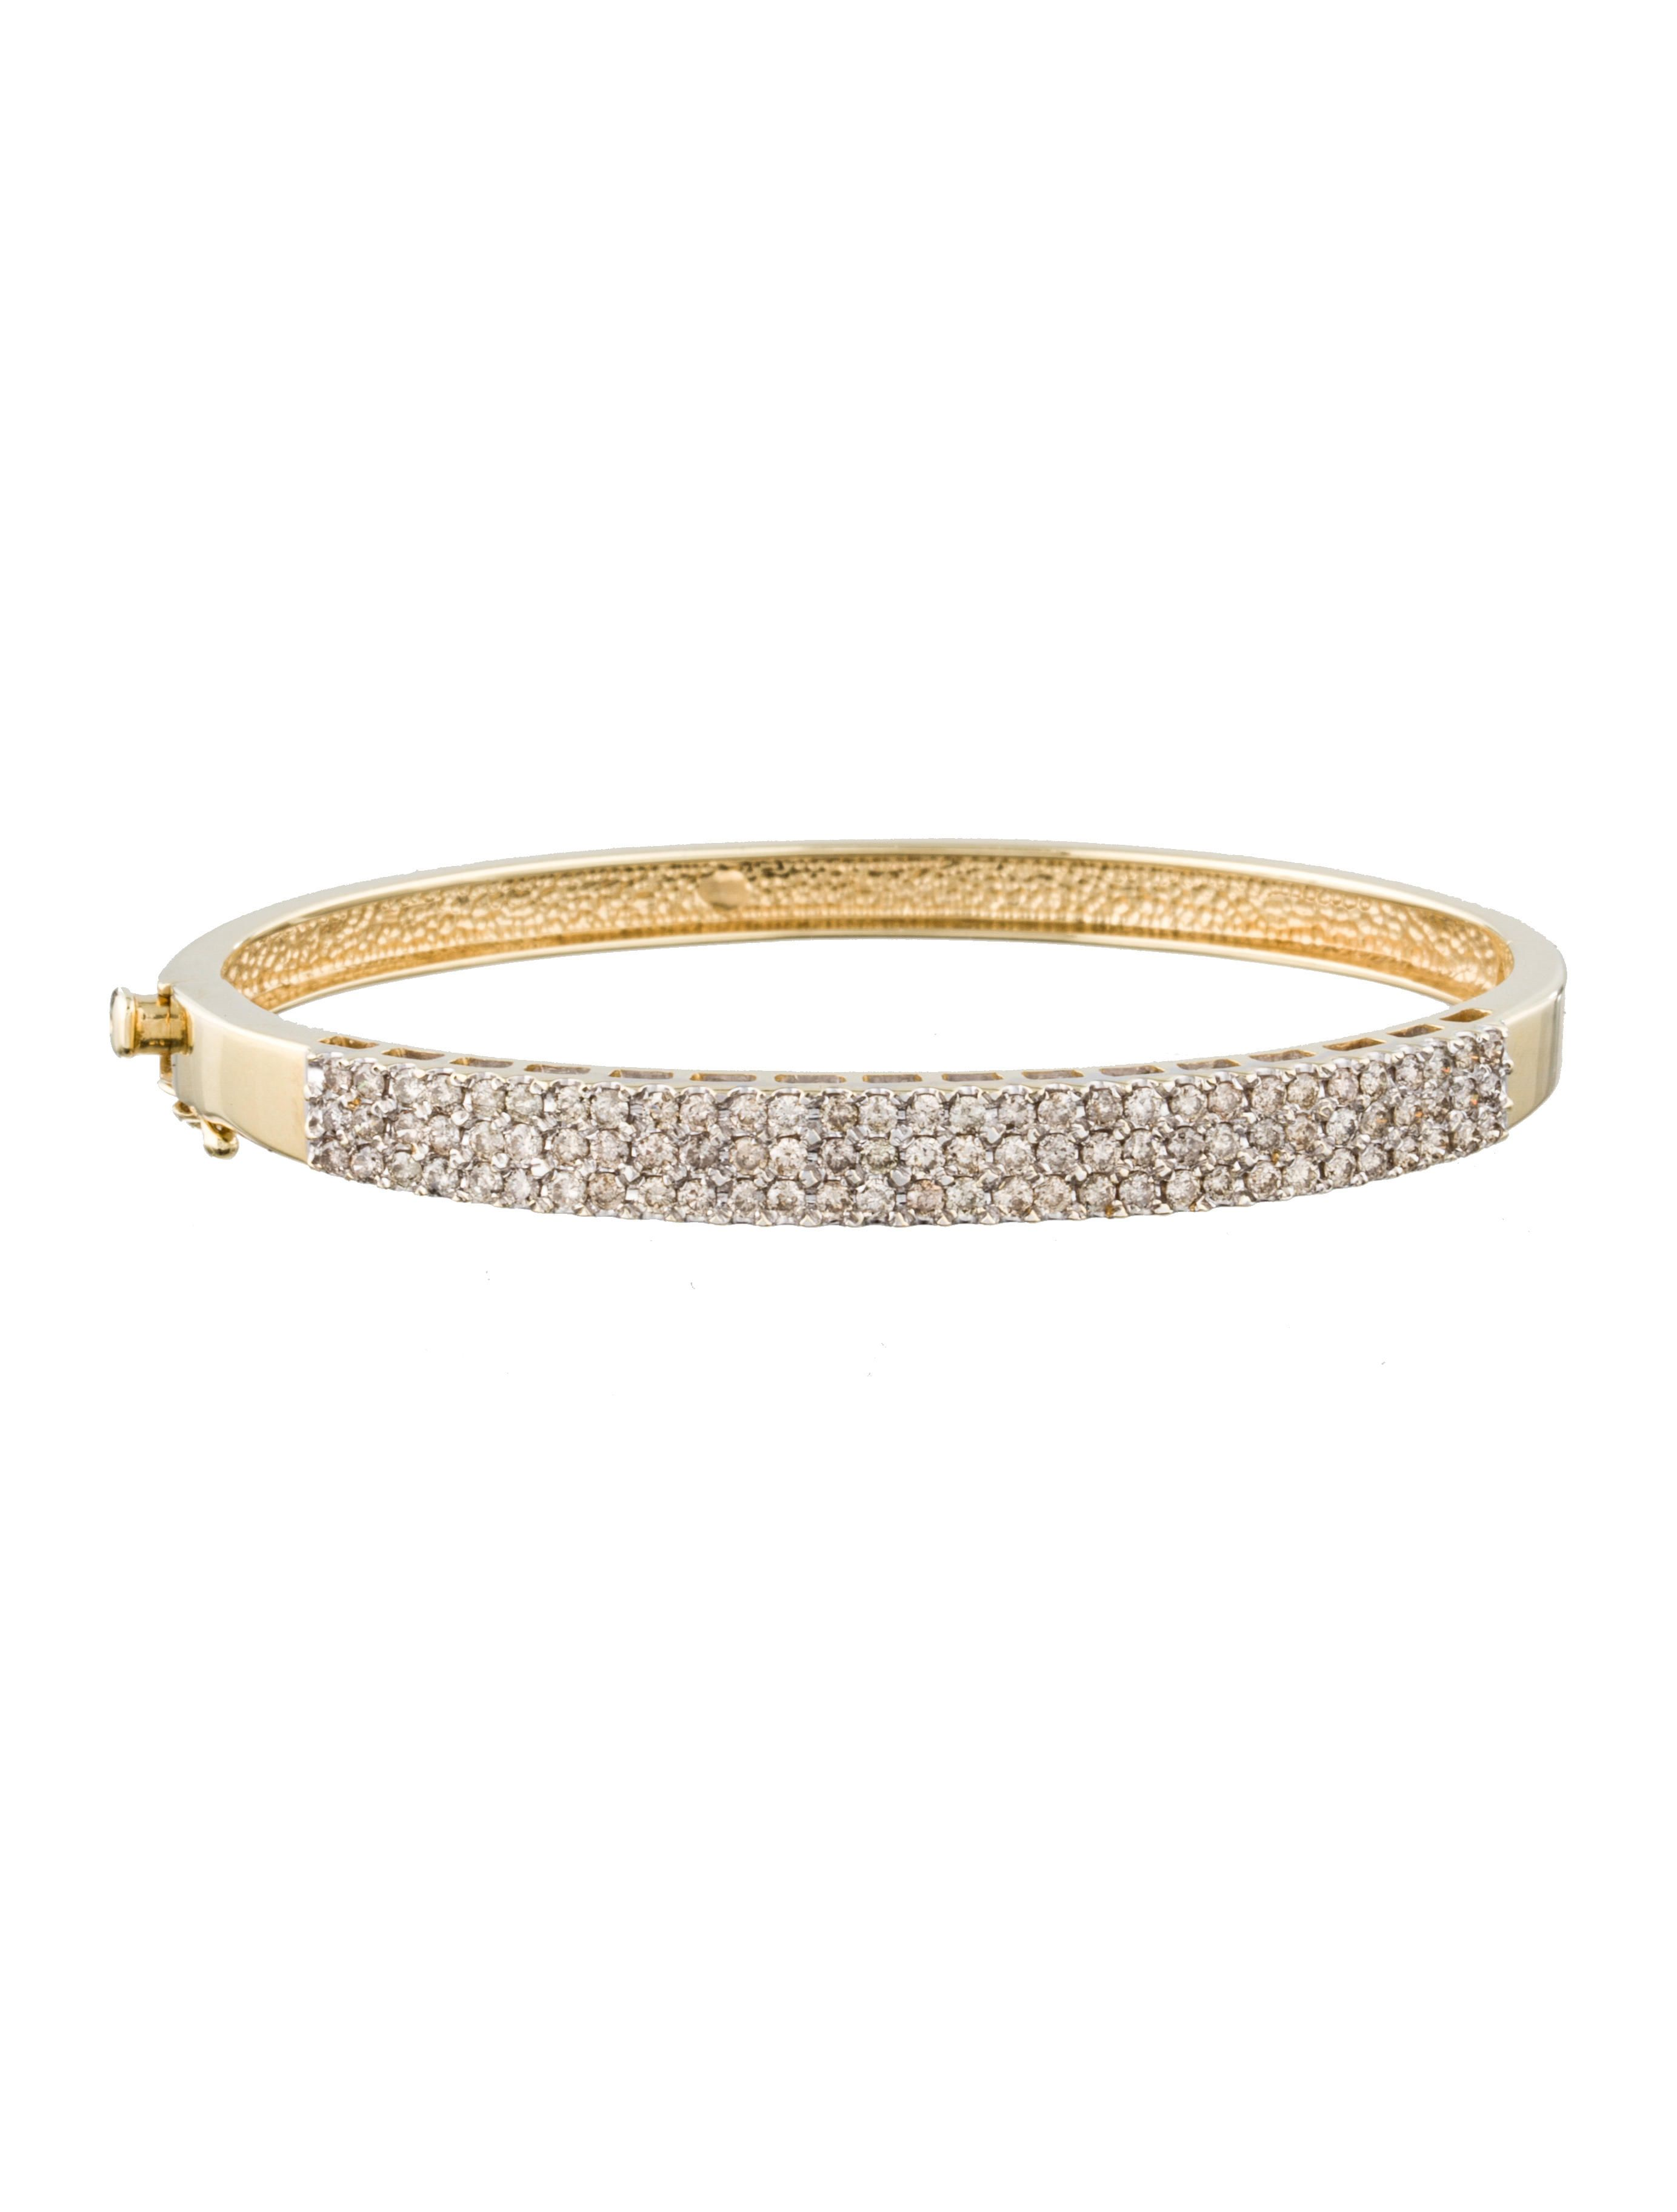 nuha products jewelers link mini pave bangles gold diamond bangle bracelet